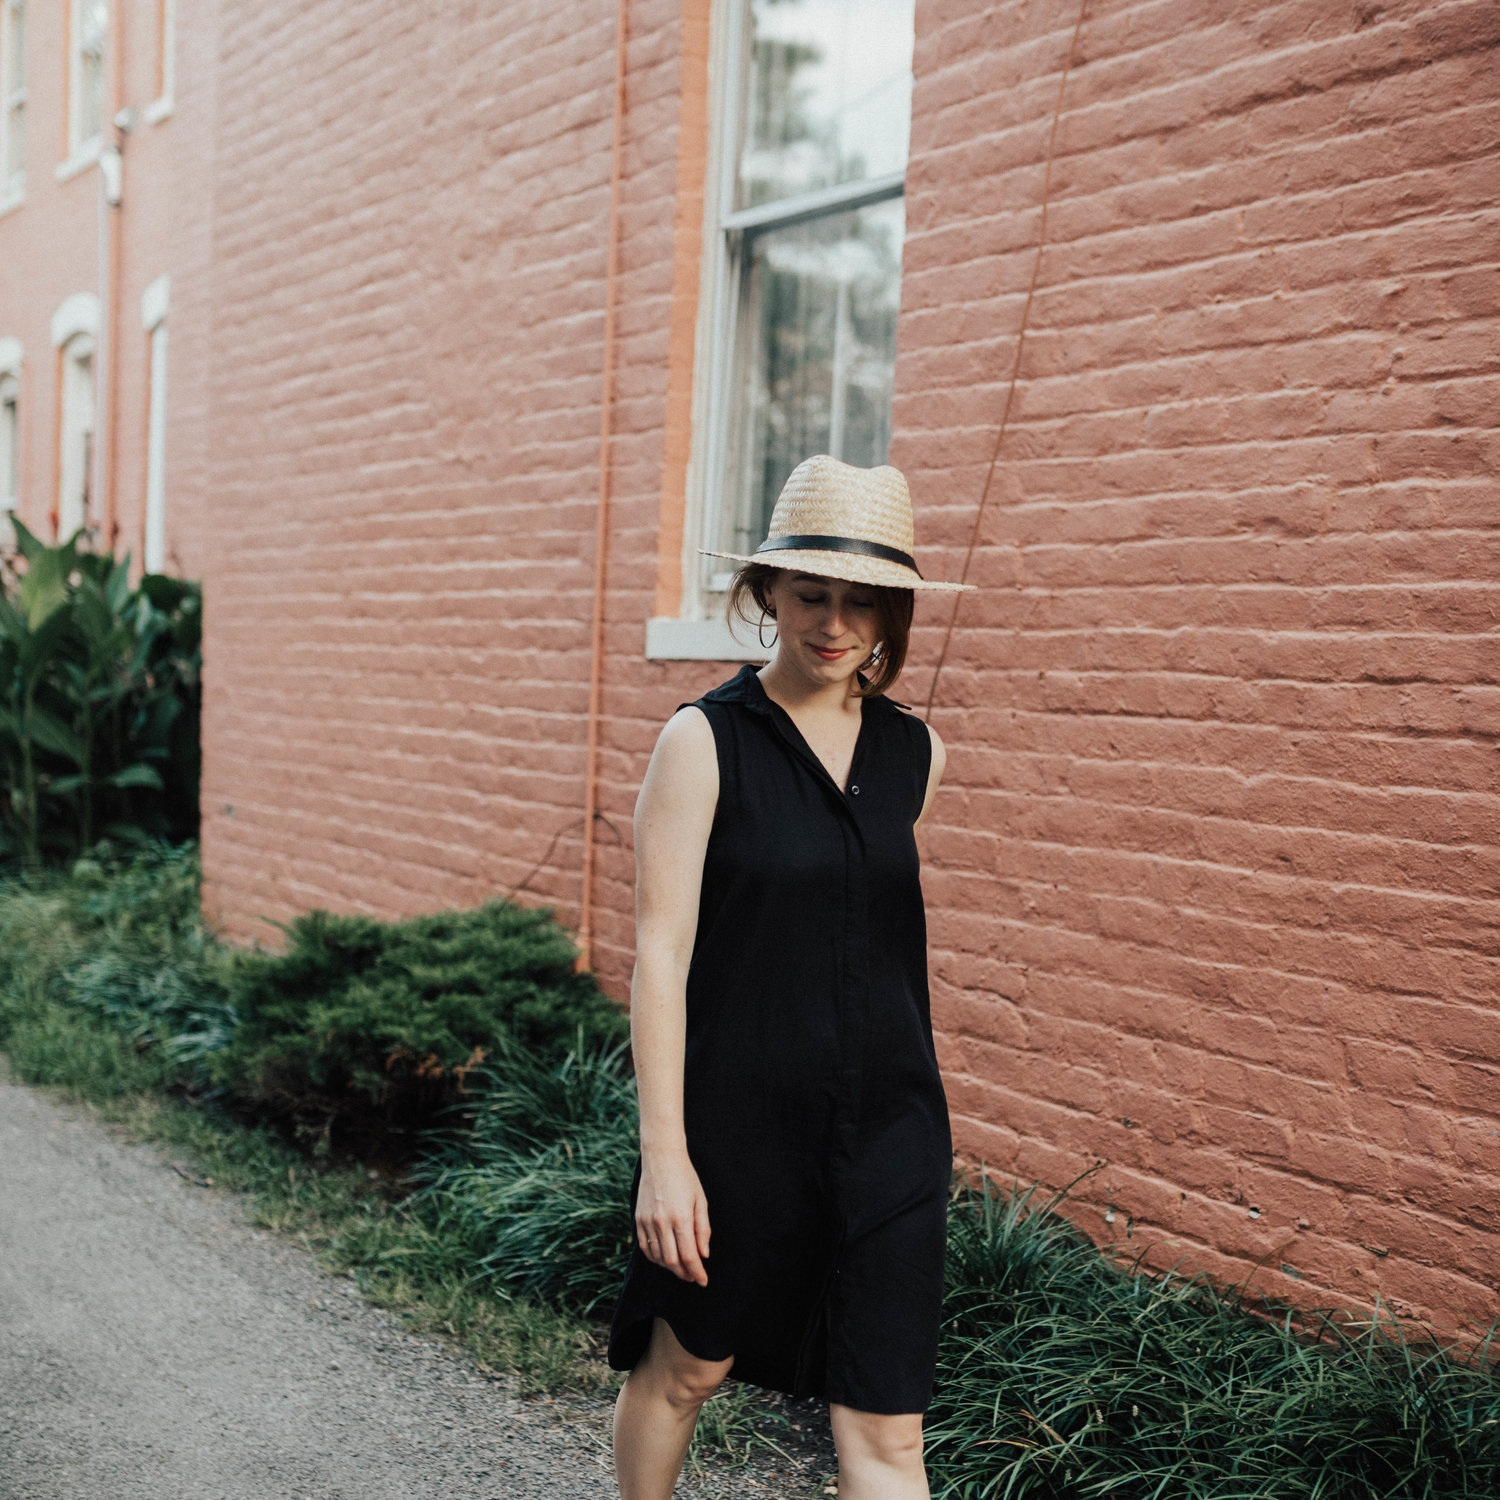 Artisan & Fox is featured on Kelly's Summer Favourites blog post, with a focus on our straw products from Vietnam.